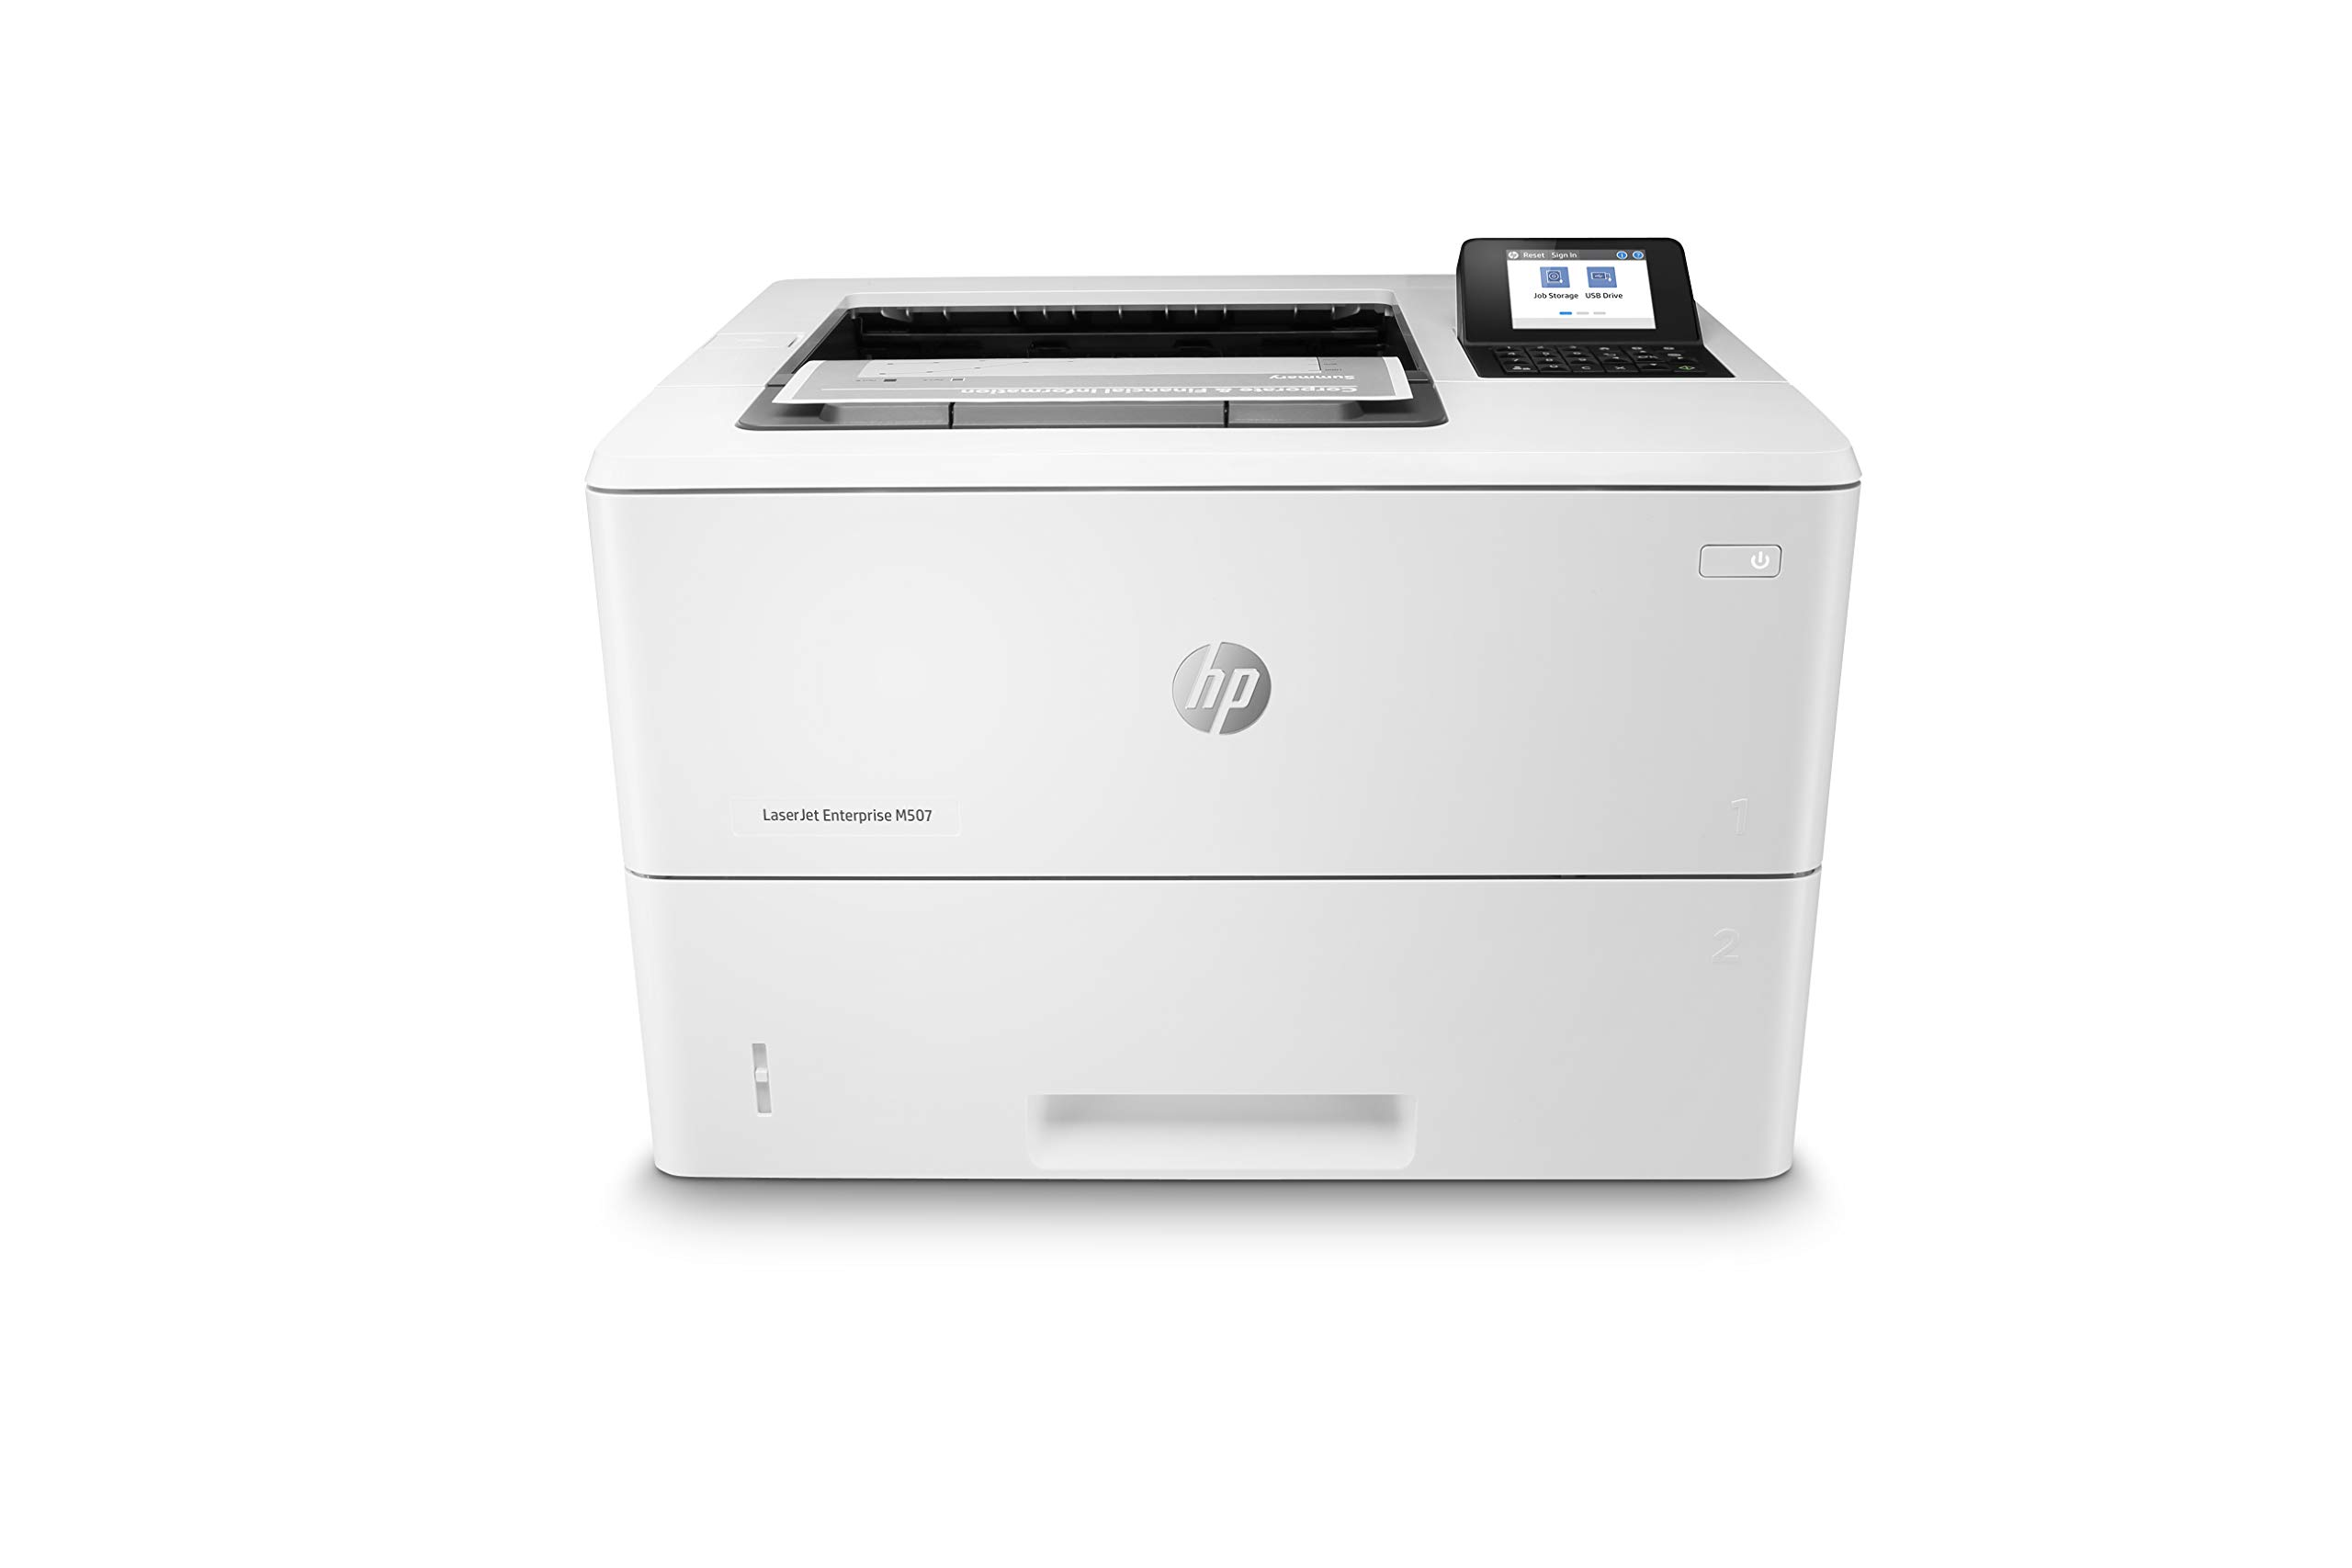 HP Laserjet Enterprise M507n with One-Year, Next-Business Day, Onsite Warranty (1PV86A) by HP